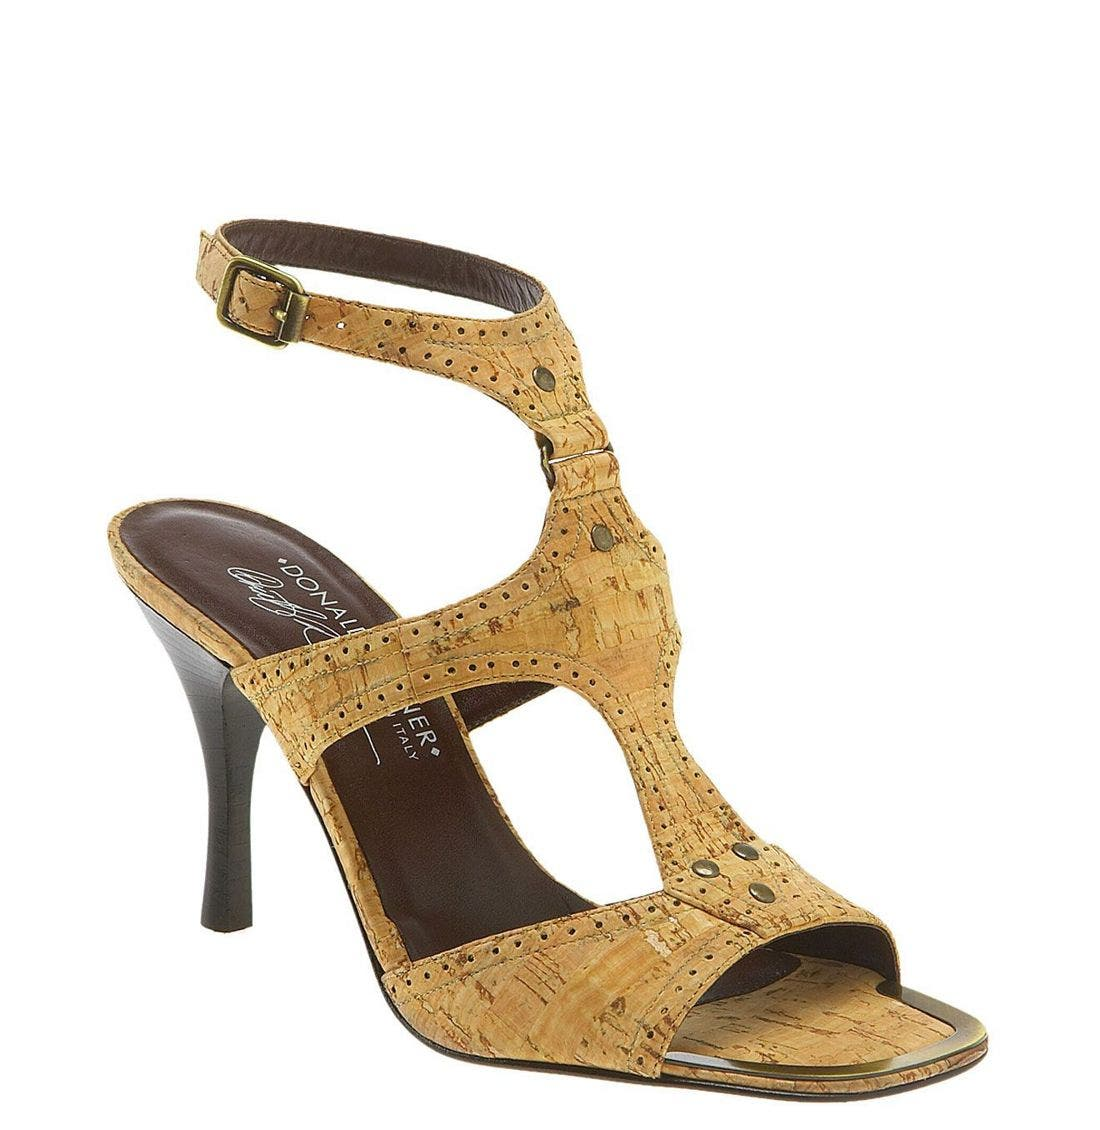 Alternate Image 1 Selected - Donald J Pliner 'Naiya' Sandal